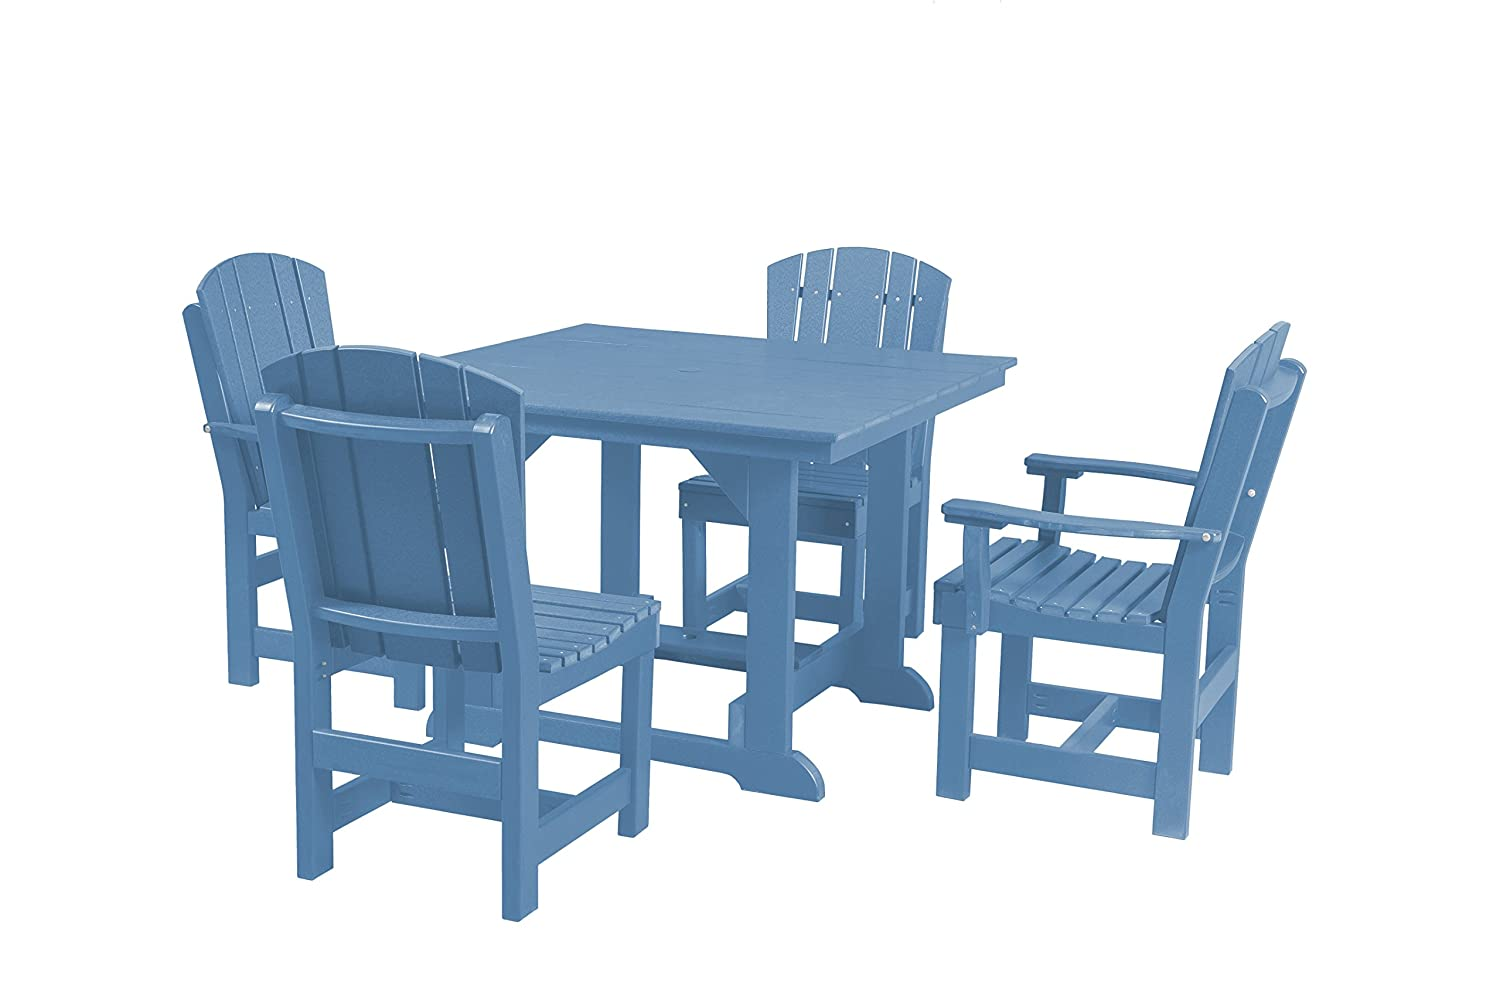 Amazon.com : Wildridge Heritage 44x44 Table with 4 Dining Chairs ...